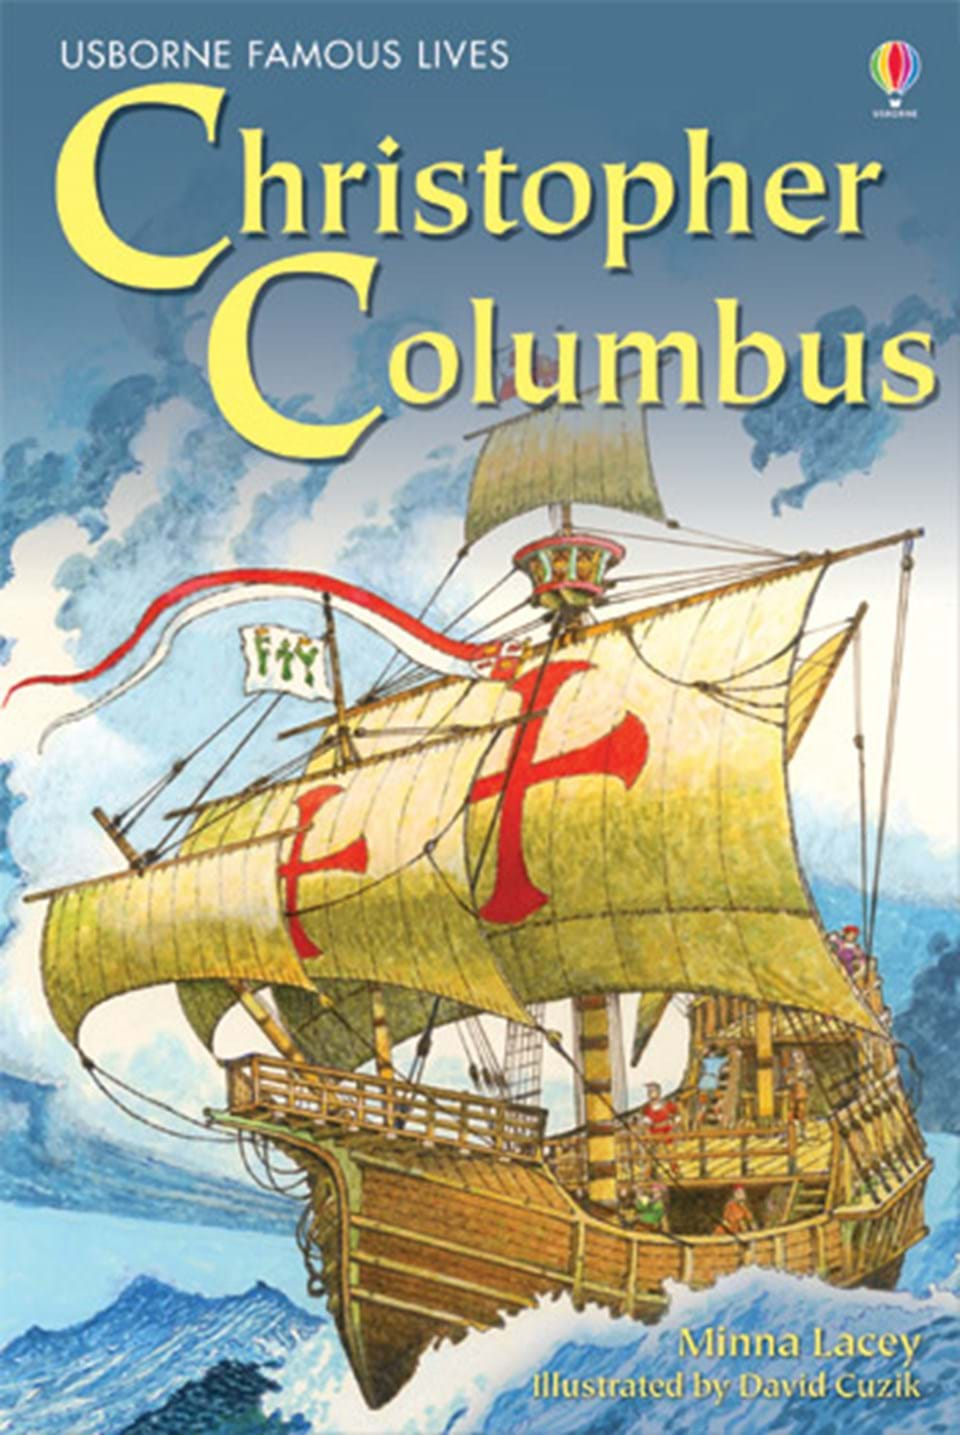 the life and times of christopher columbus The life of christopher columbus - free book at e-books directory you can download the book or read it online it is made freely available by its author and publisher.